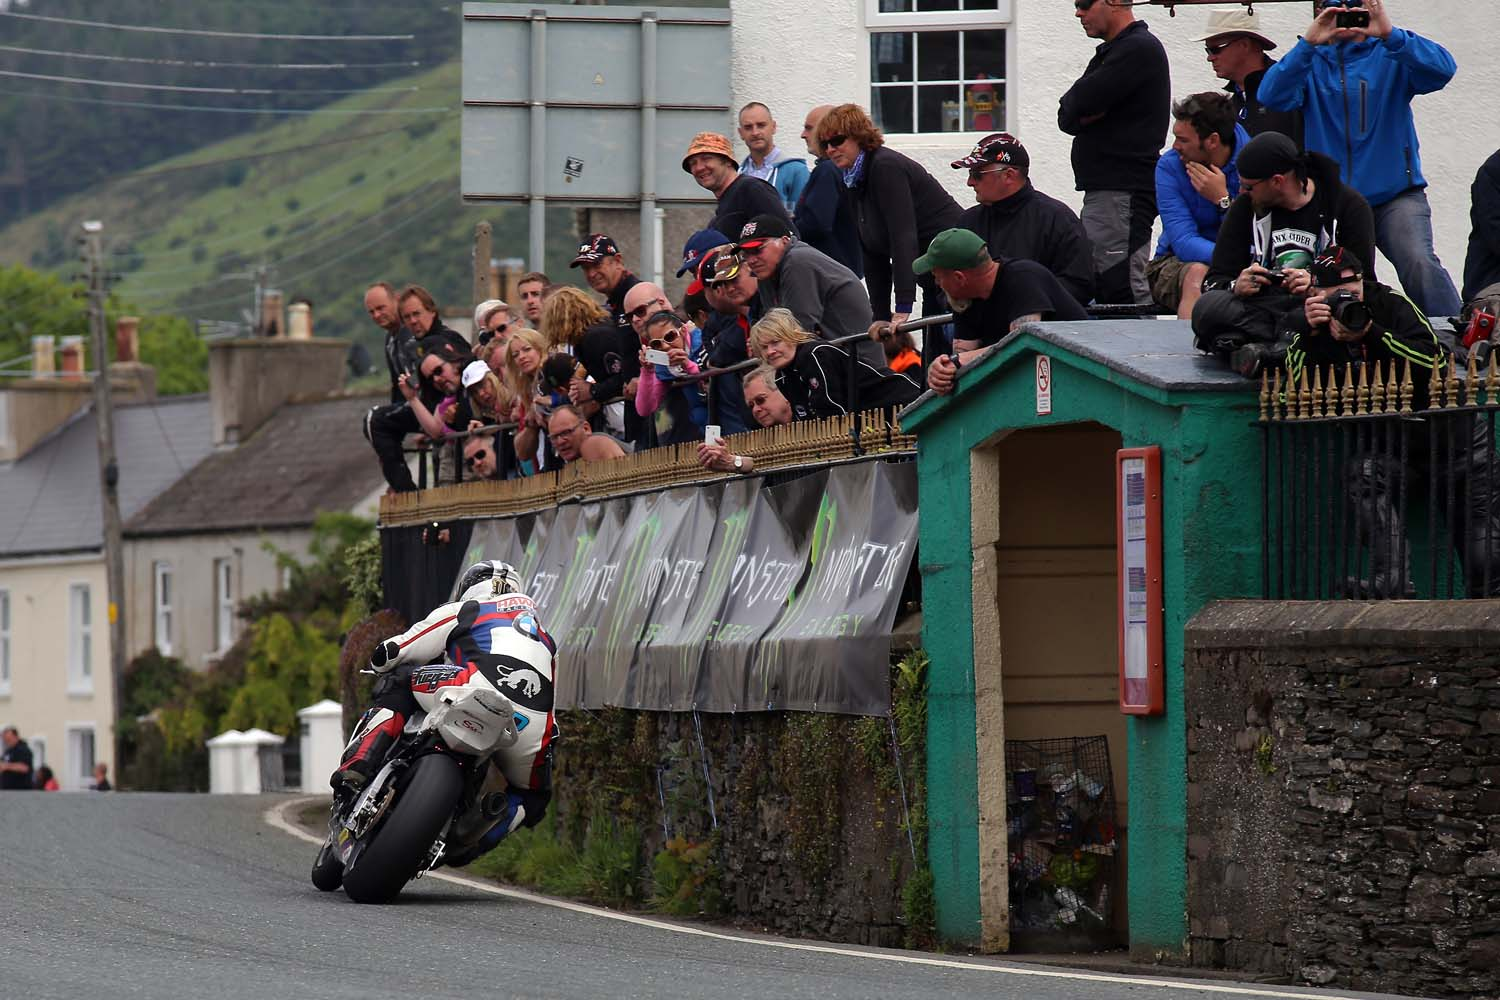 to follow all of Asphalt & Rubber's 2014 Isle of Man TT coverage